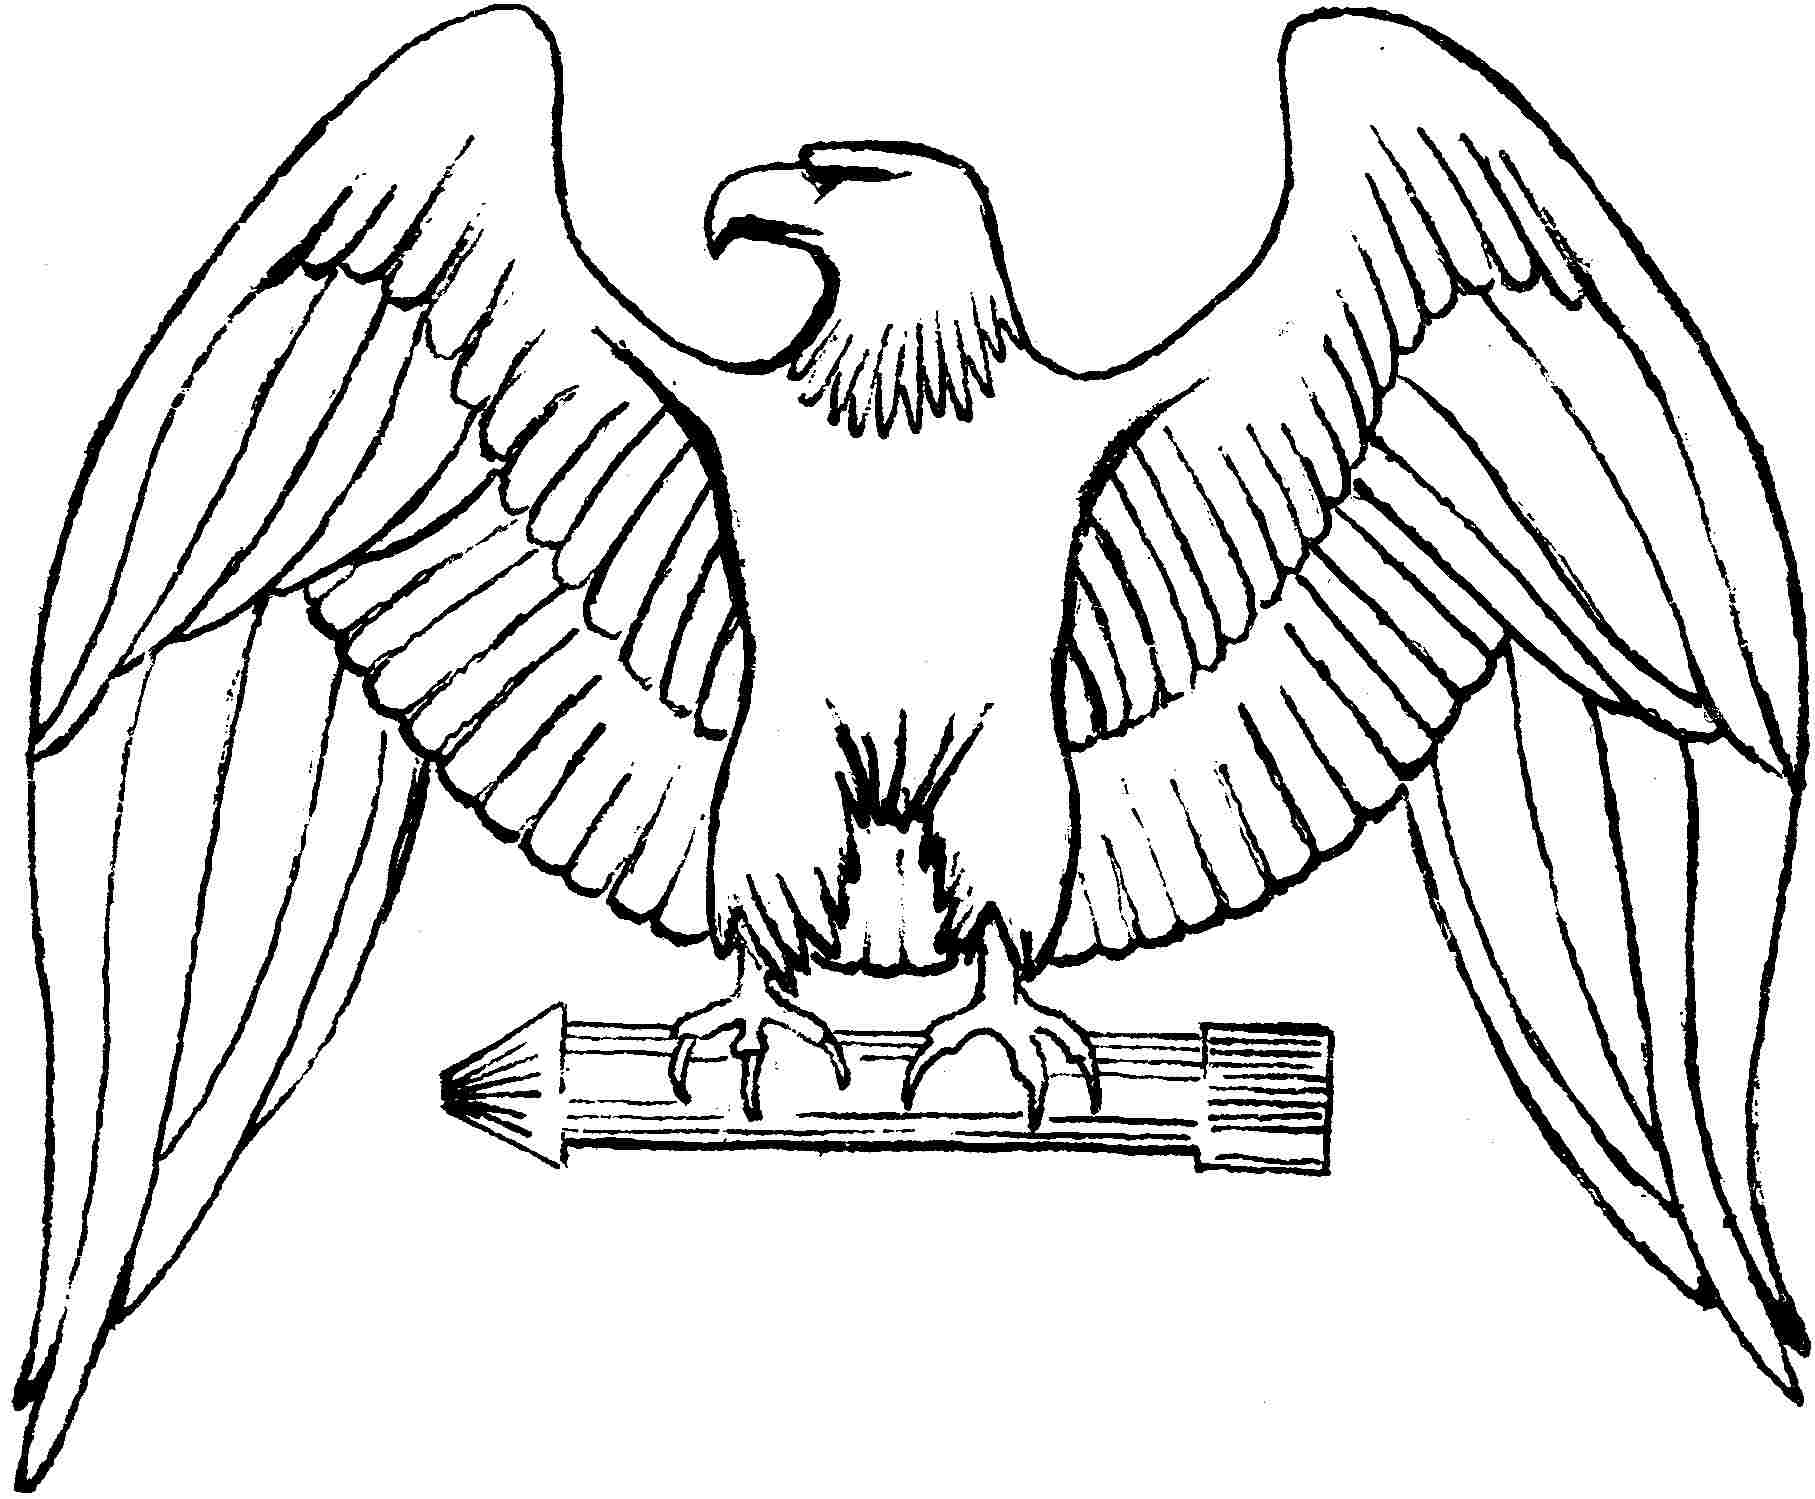 free printable pictures of eagles free printable bald eagle coloring pages for kids eagles printable pictures free of